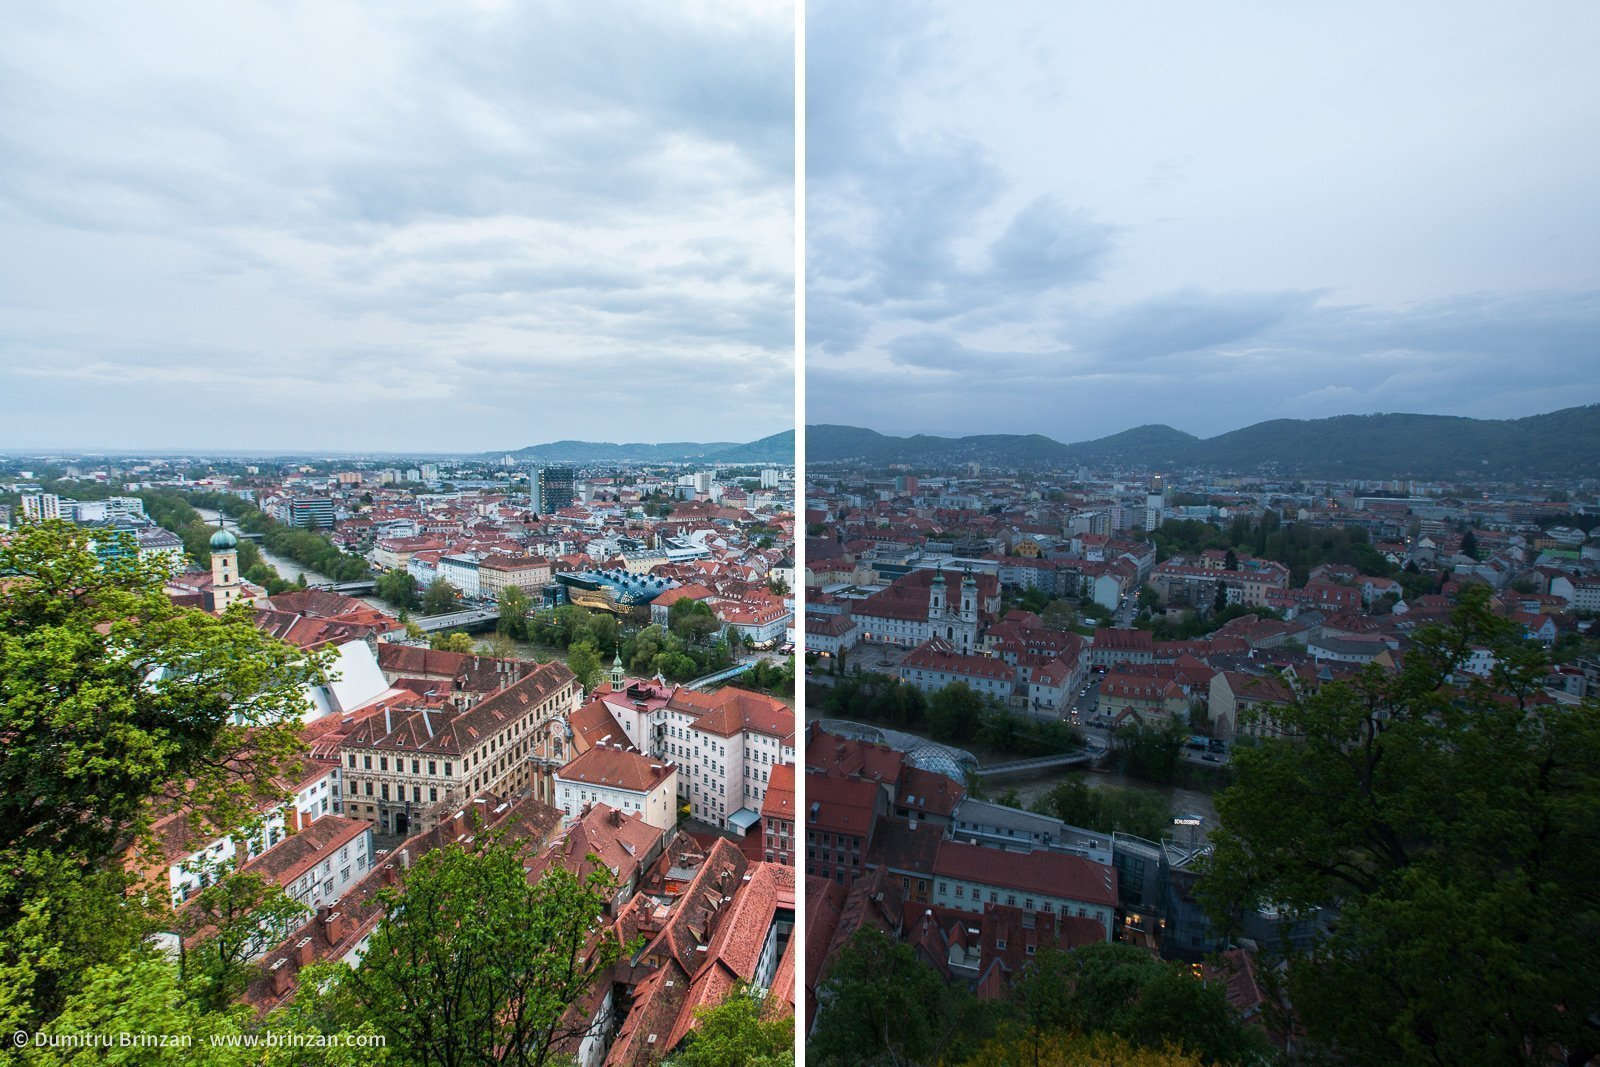 graz-austria-2013-comparison